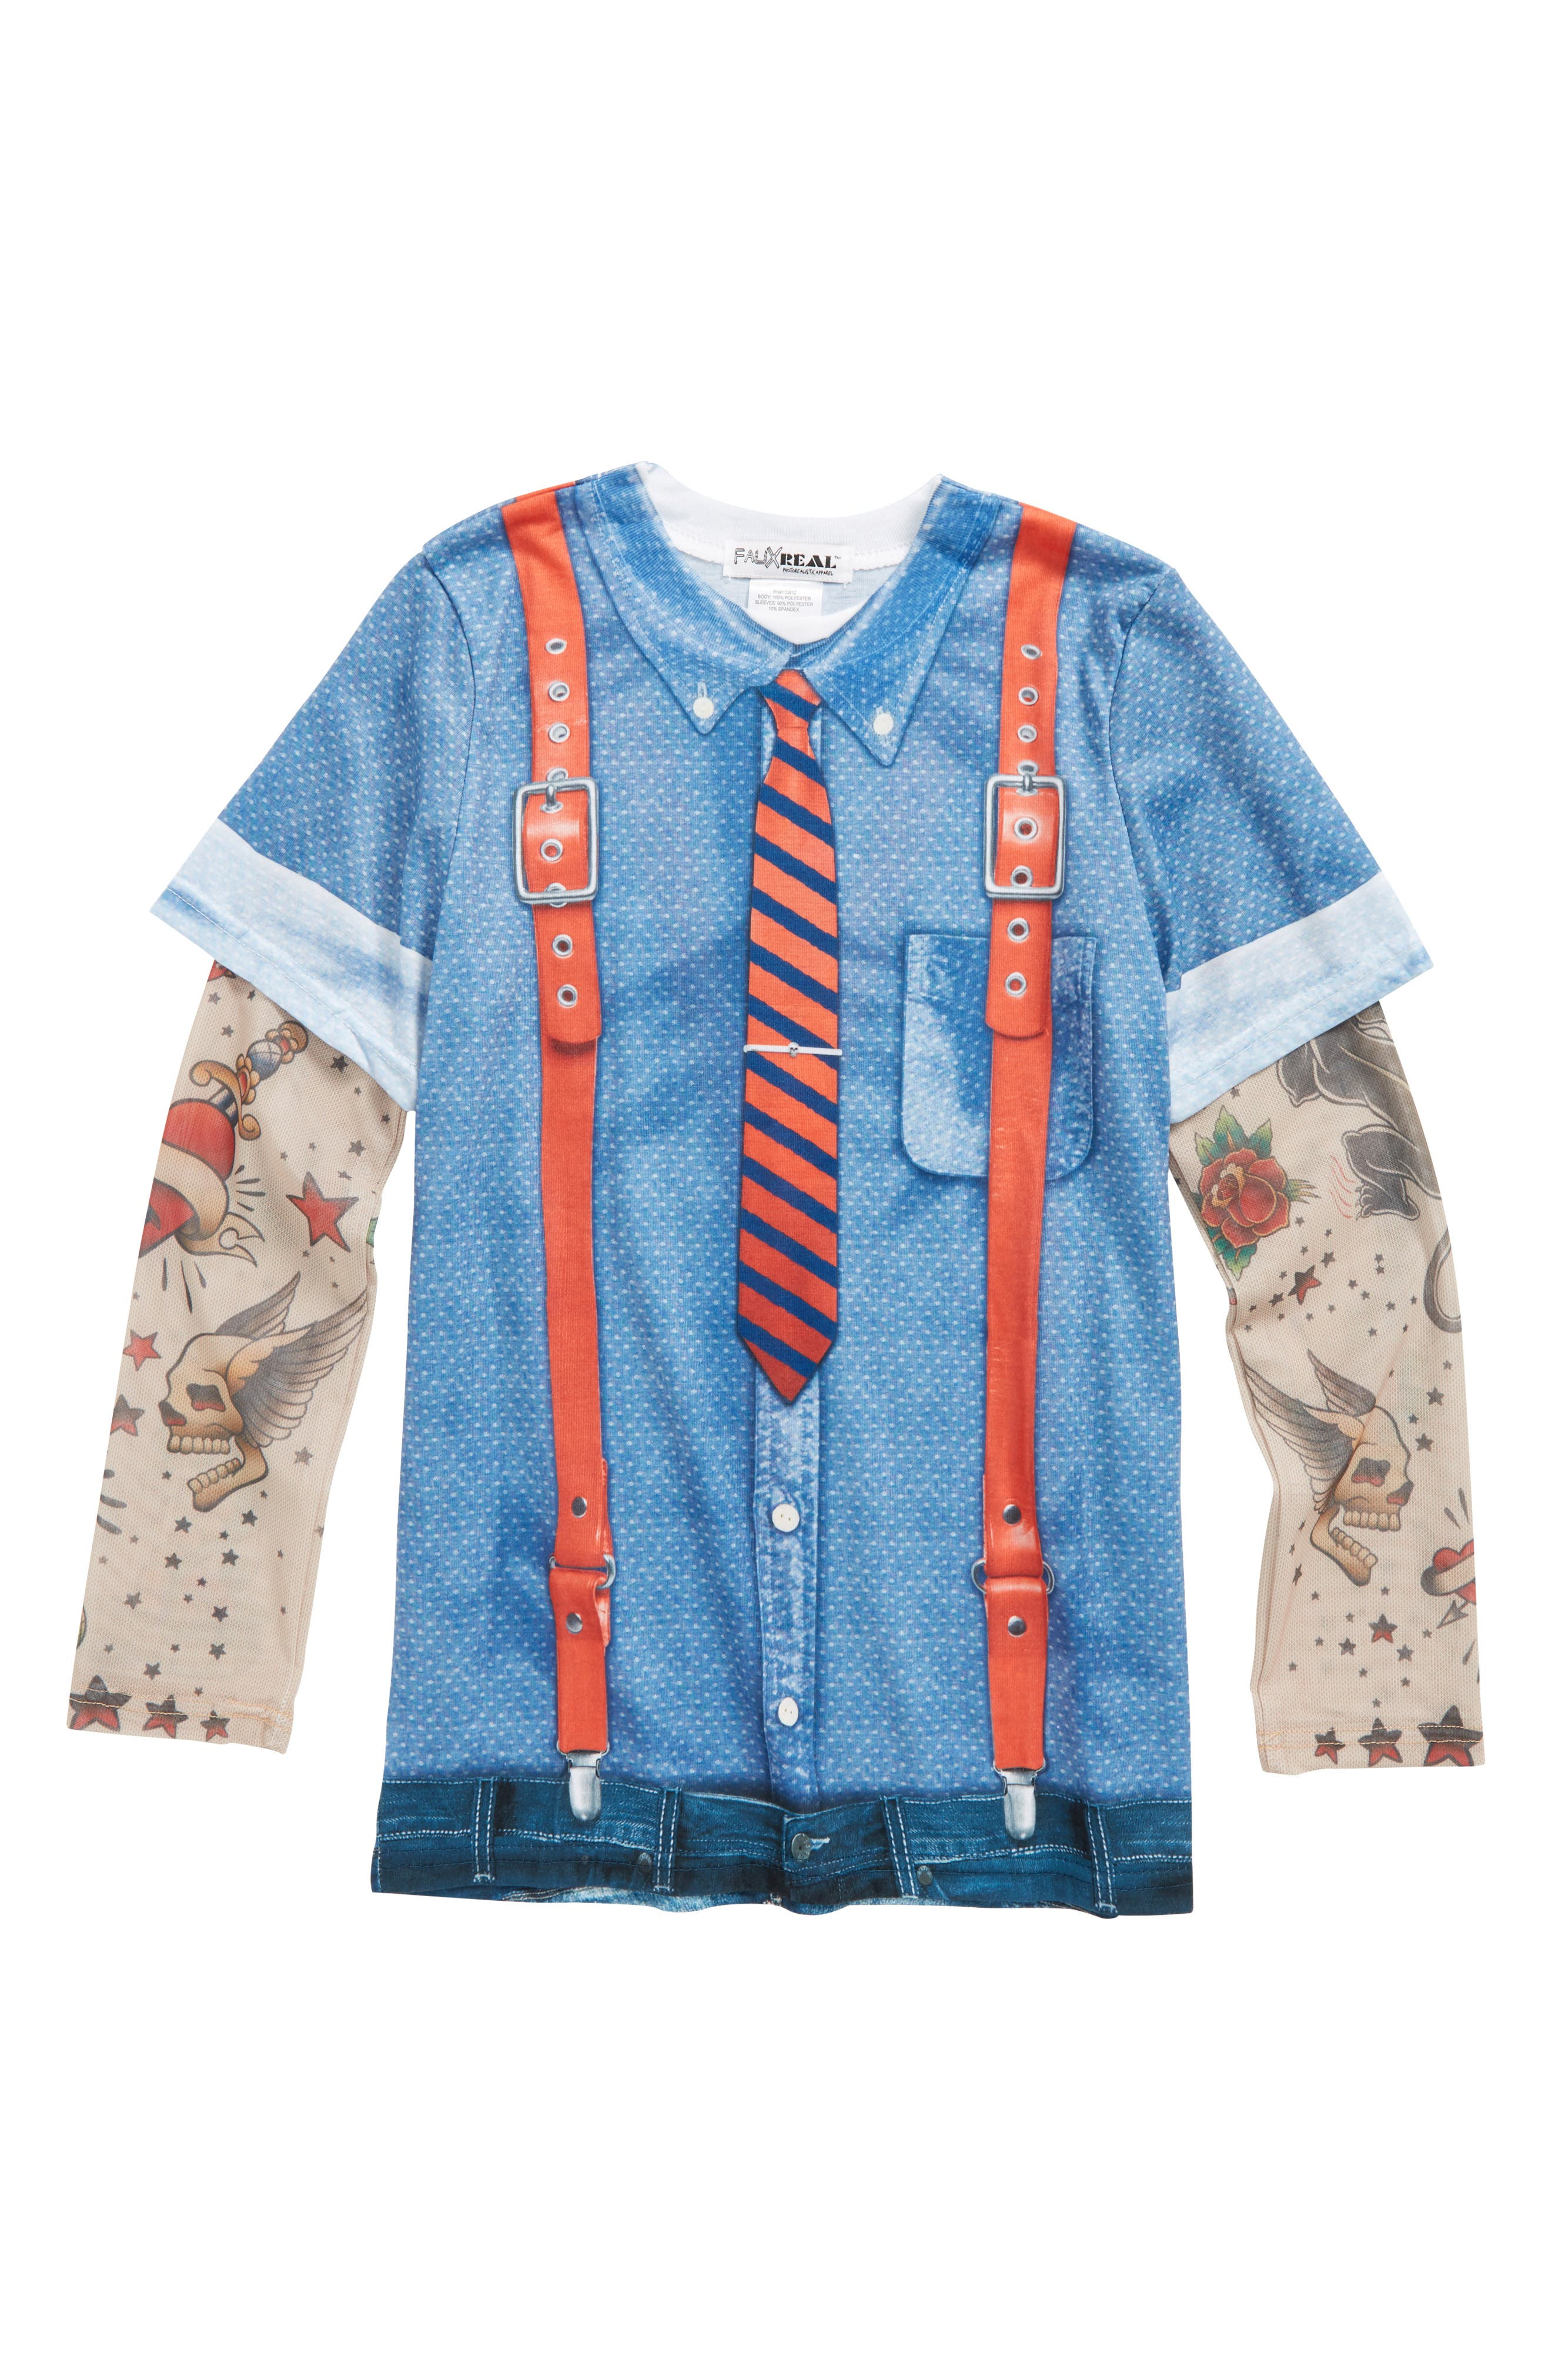 Hipster Tie & Suspenders T-Shirt with Tattoo Print Sleeves,                         Main,                         color, Blue/ Red